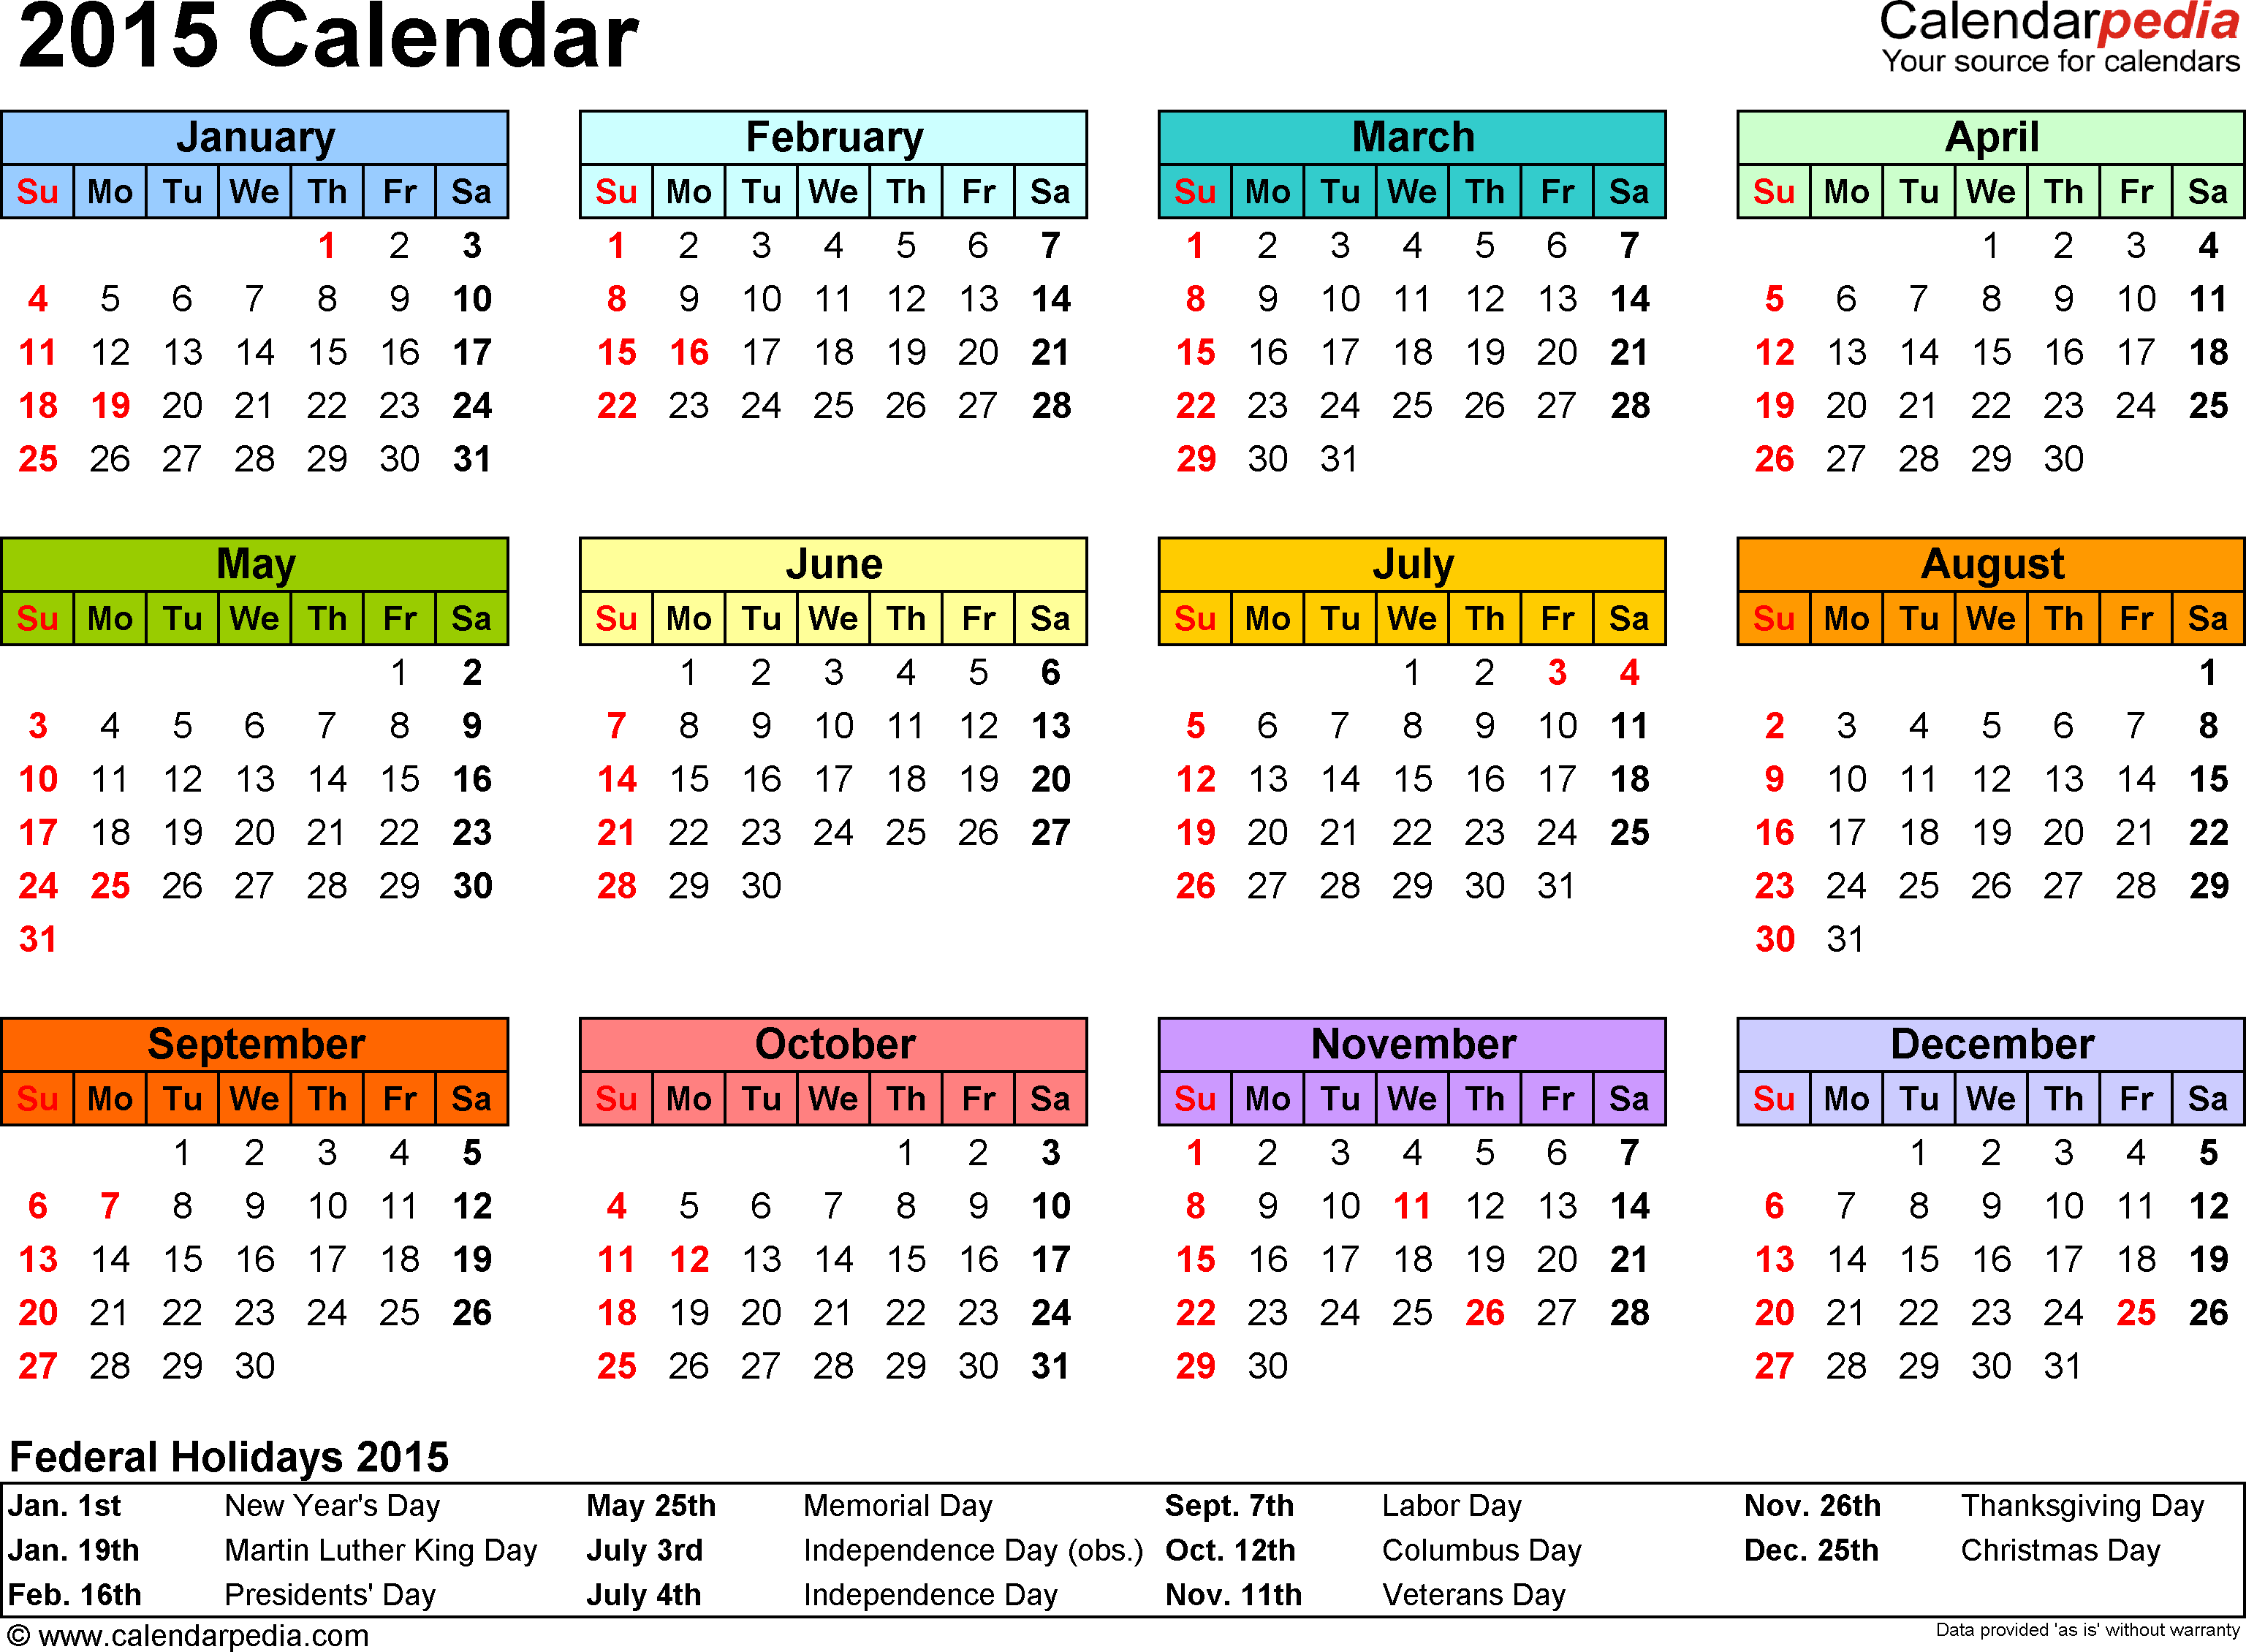 Template 7: 2015 Calendar for Excel, year at a glance, 1 page, in color